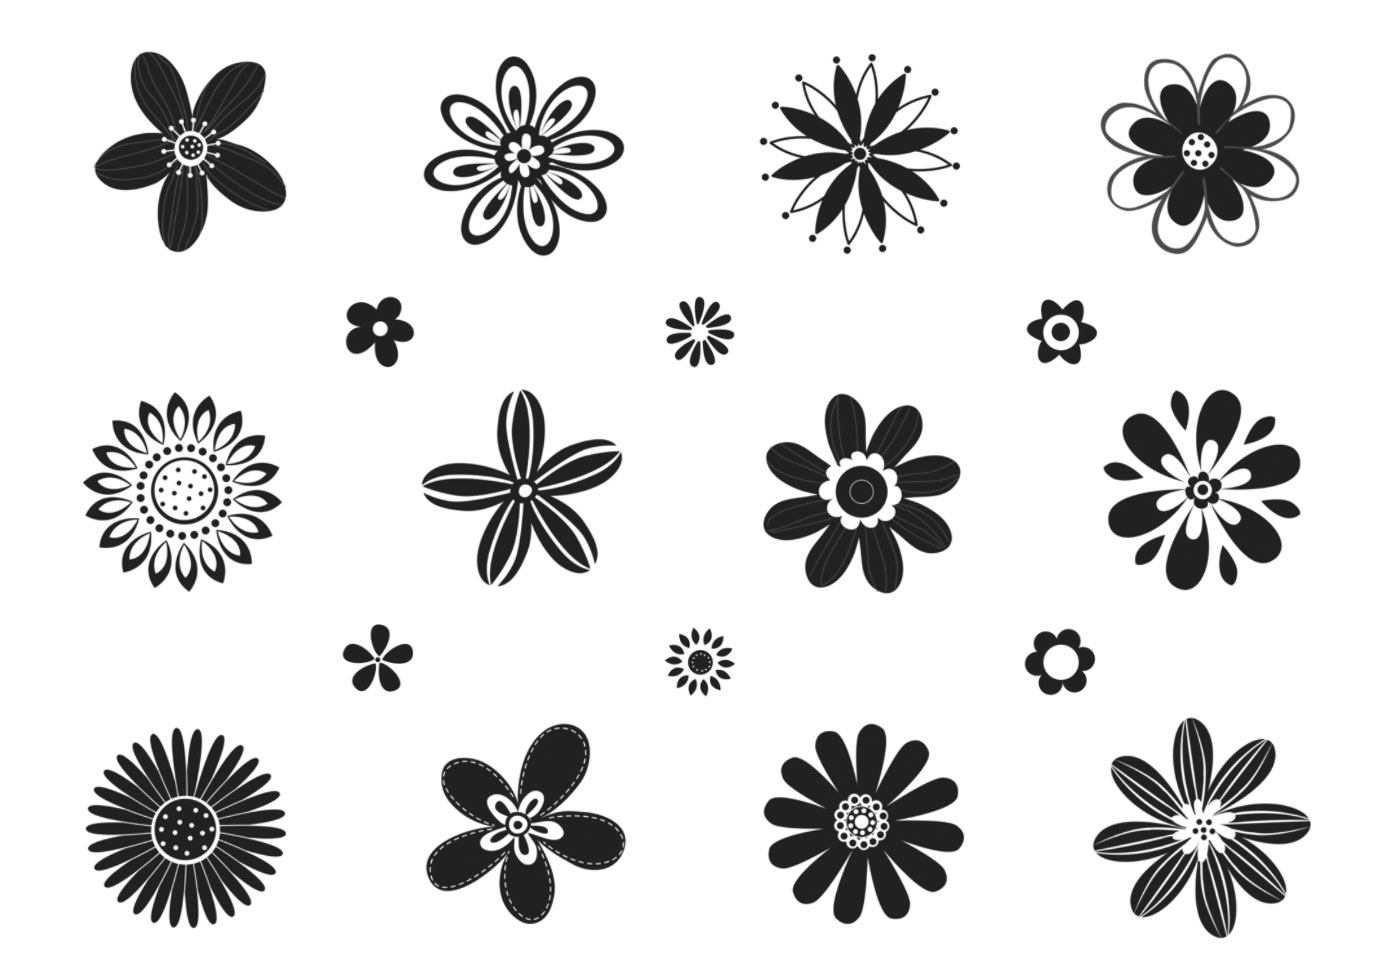 Stylized Black And White Flower Vector Pack Download Free Vector